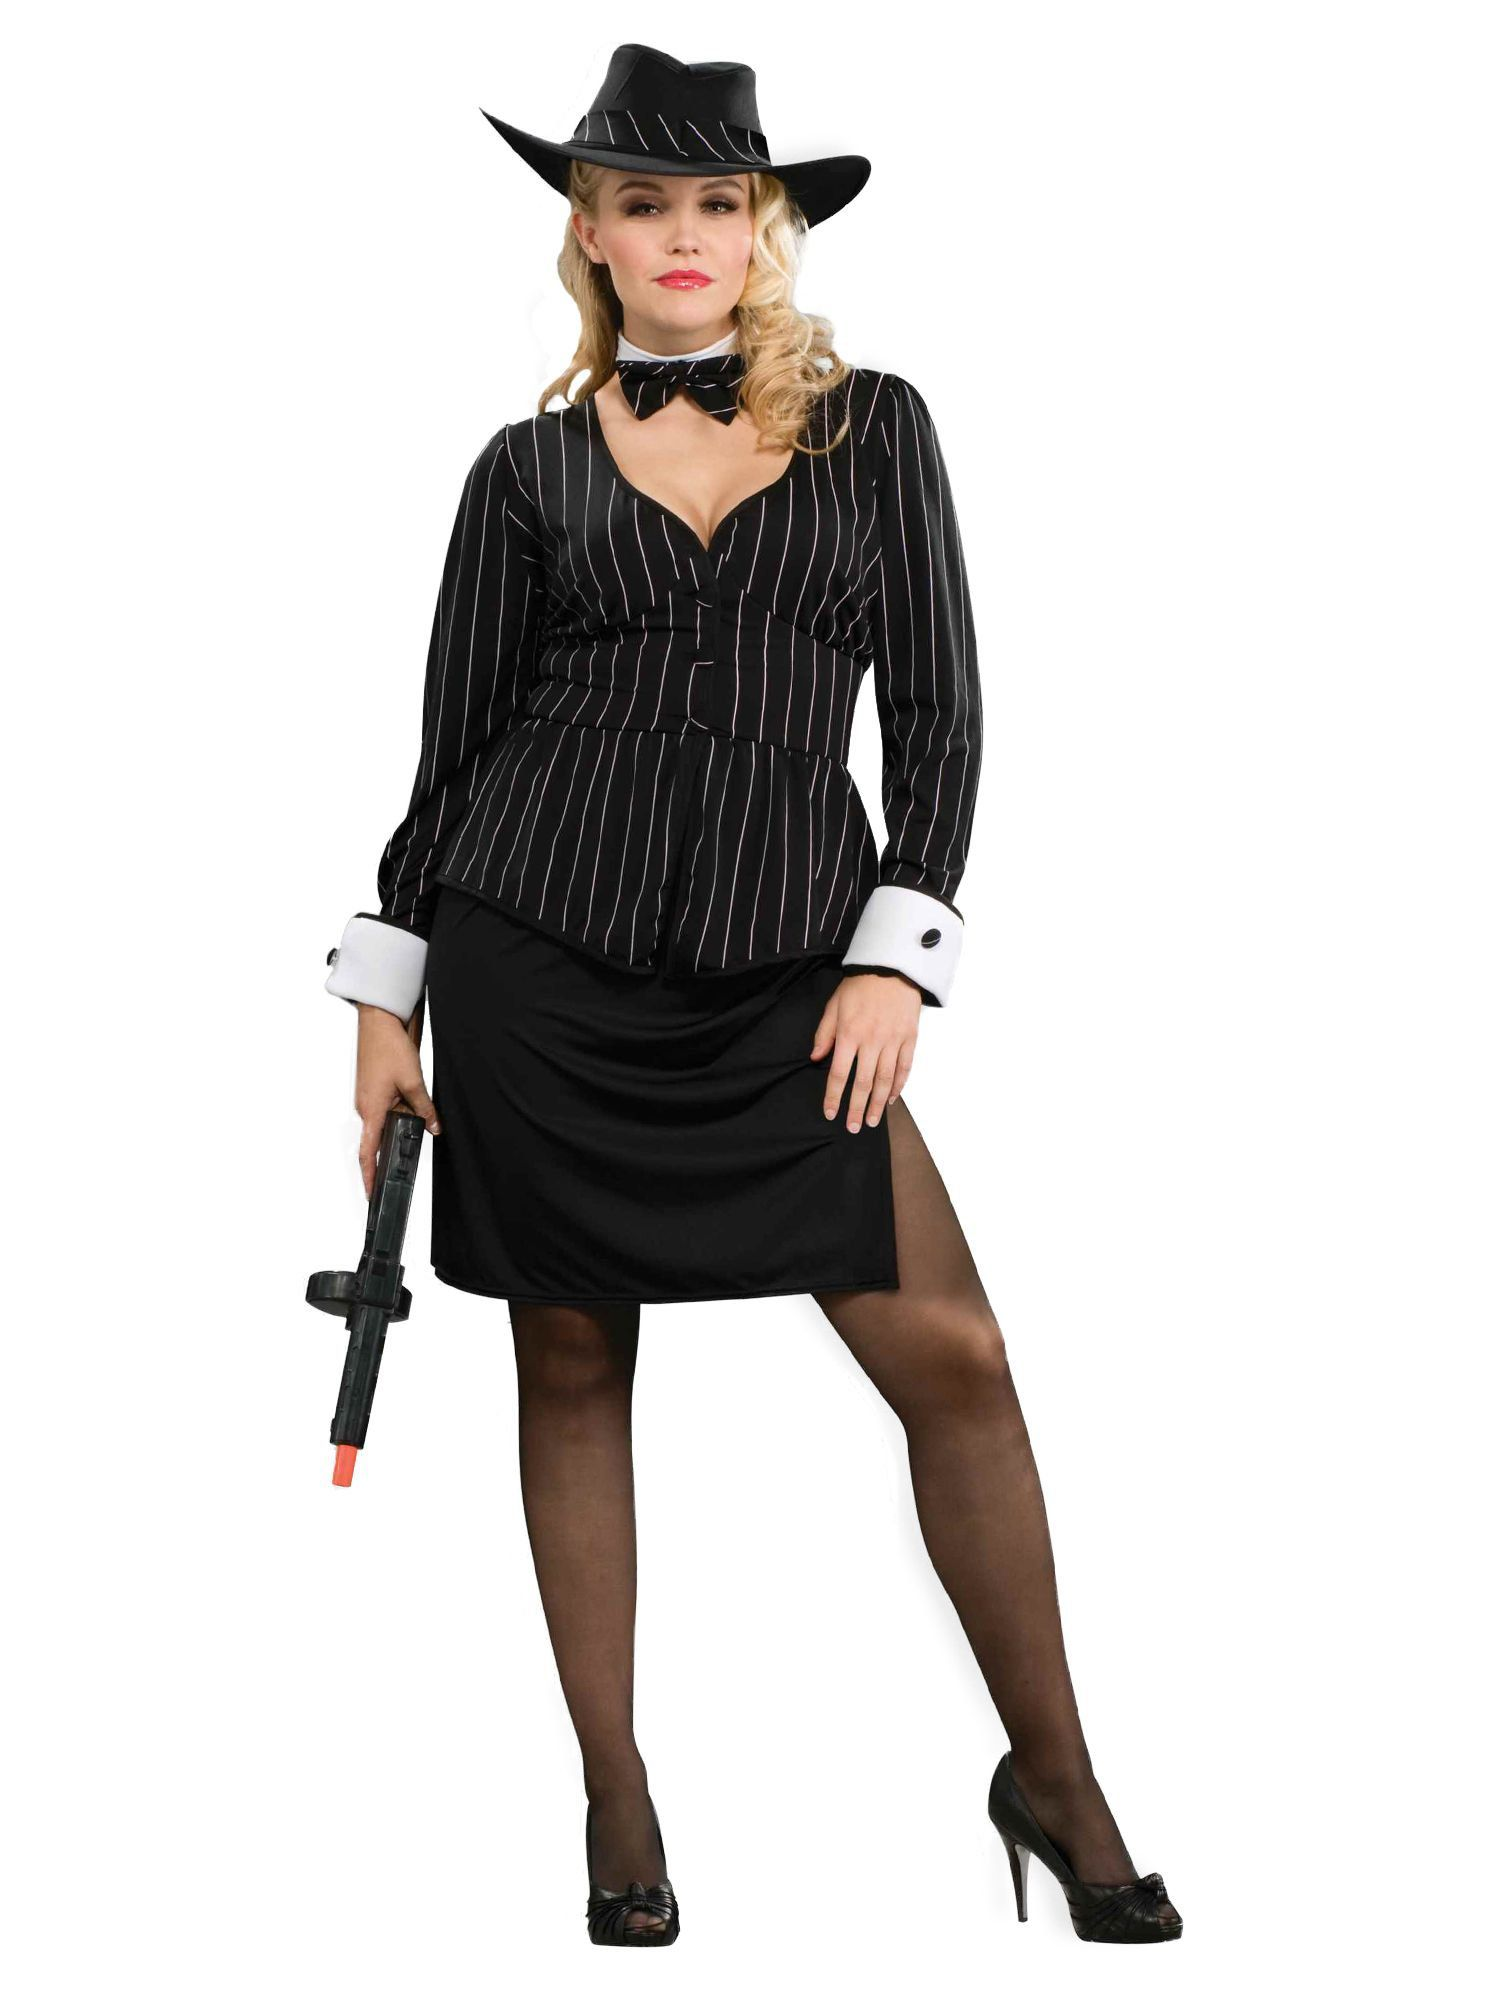 510d7134e53 Womens Plus Size Gangster Costume - Womens Costumes for 2018 ...